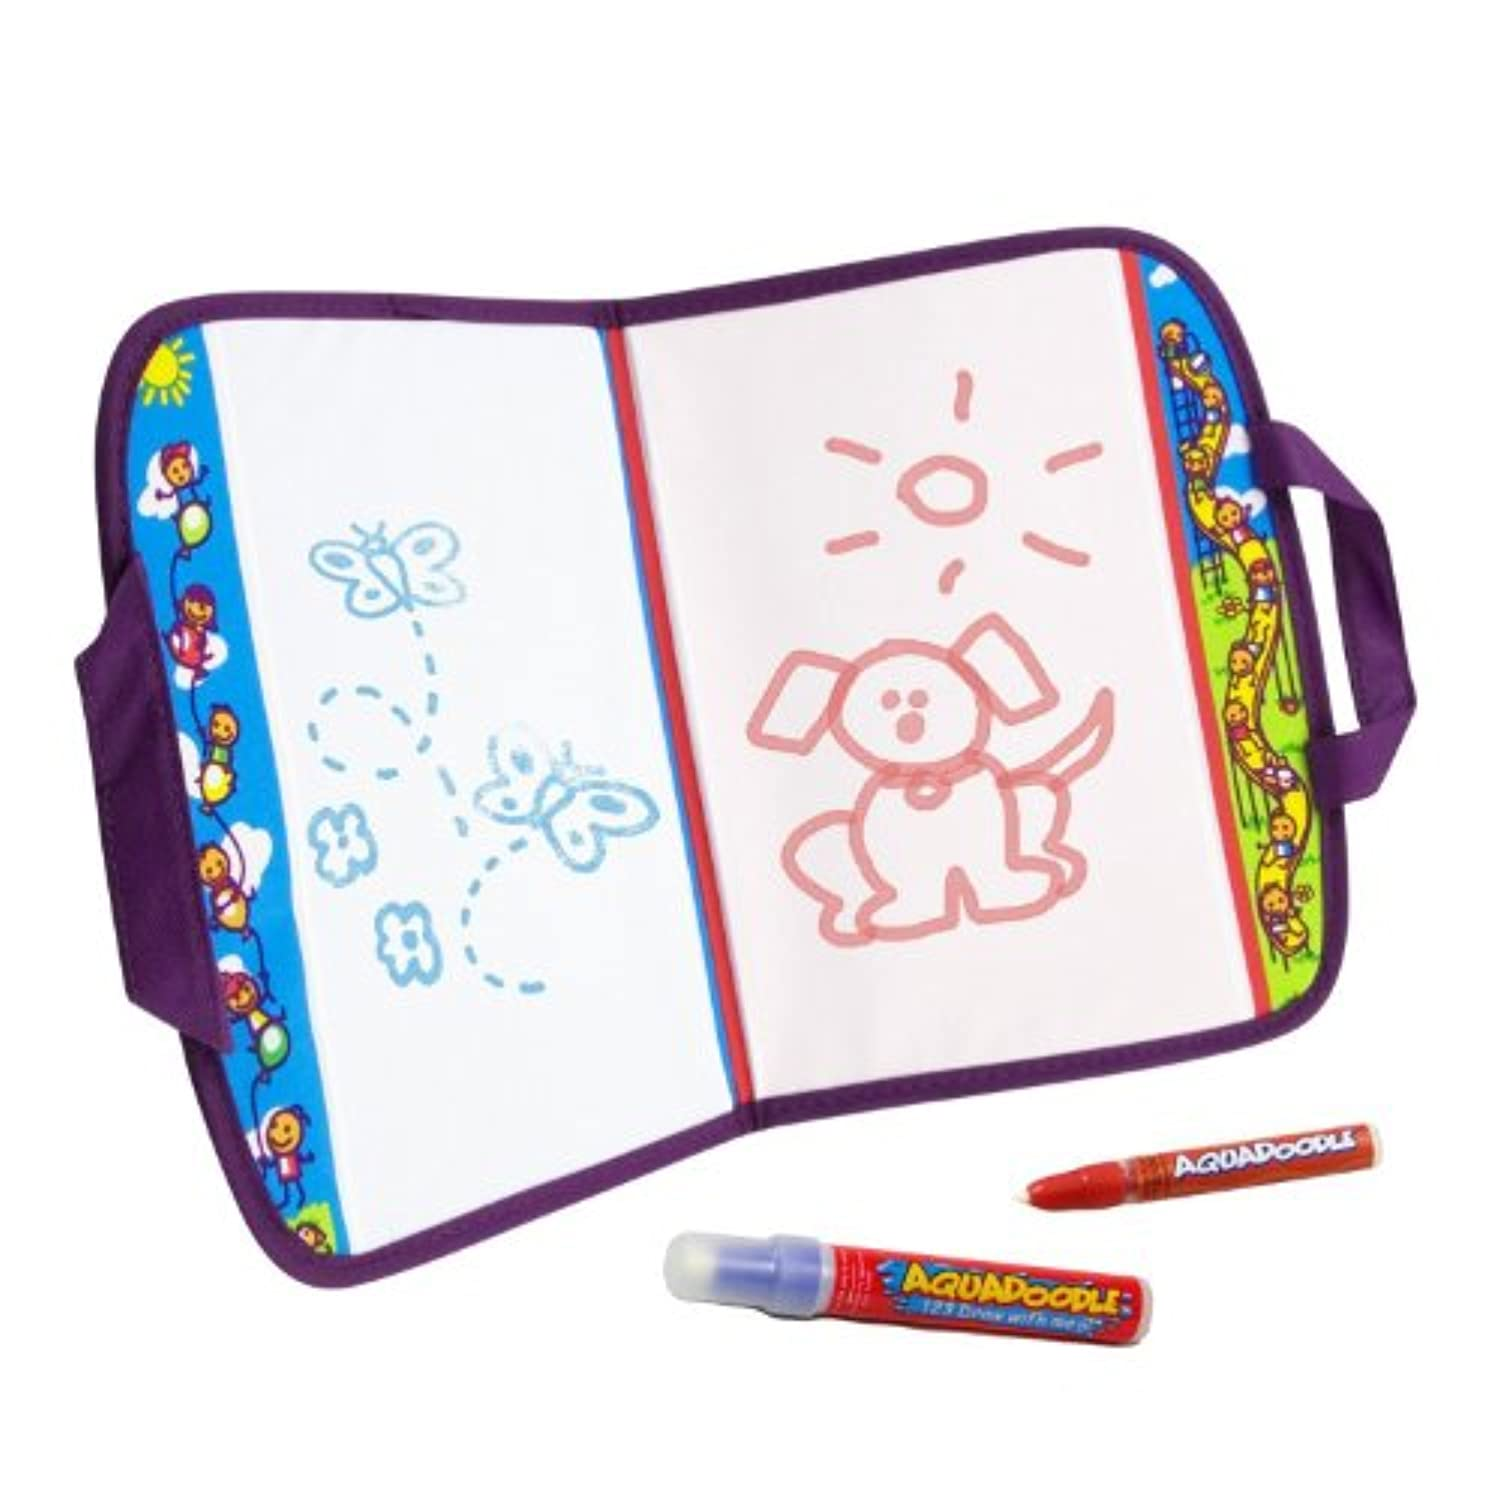 [AquaDoodle]AquaDoodle Travel Doodle with Bonus Pen and Cap 20054094 [並行輸入品]